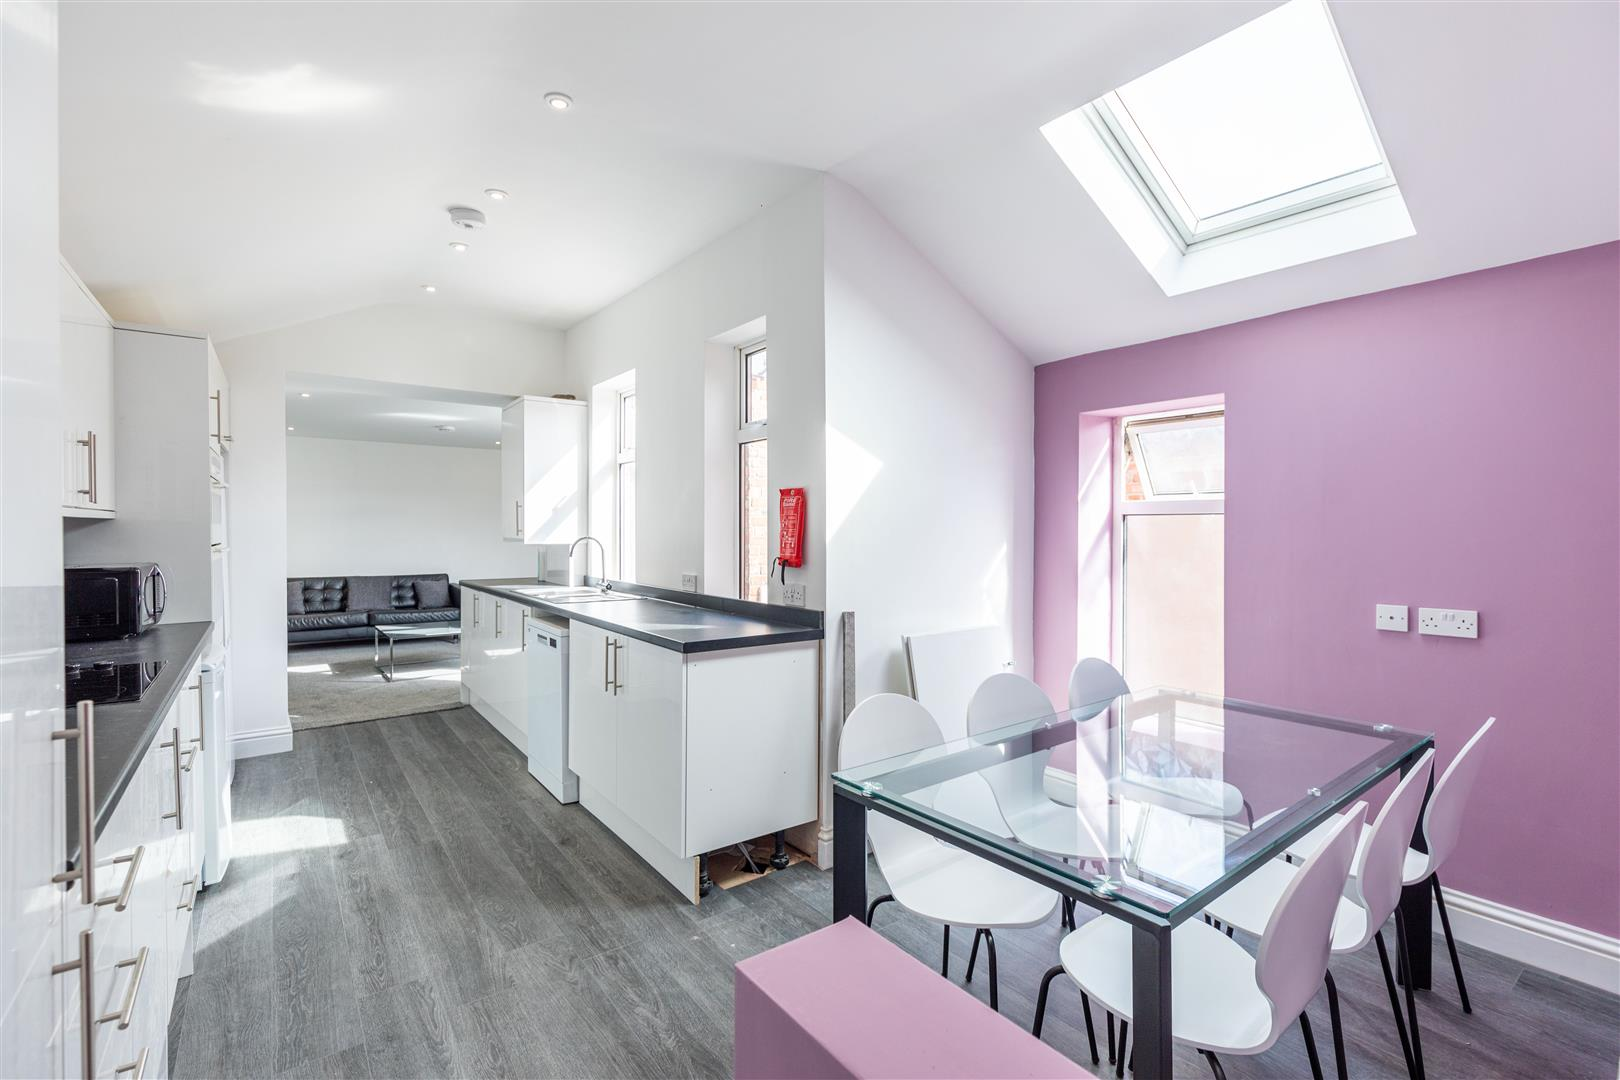 6 bed maisonette to rent in Jesmond, NE2 3HY, NE2